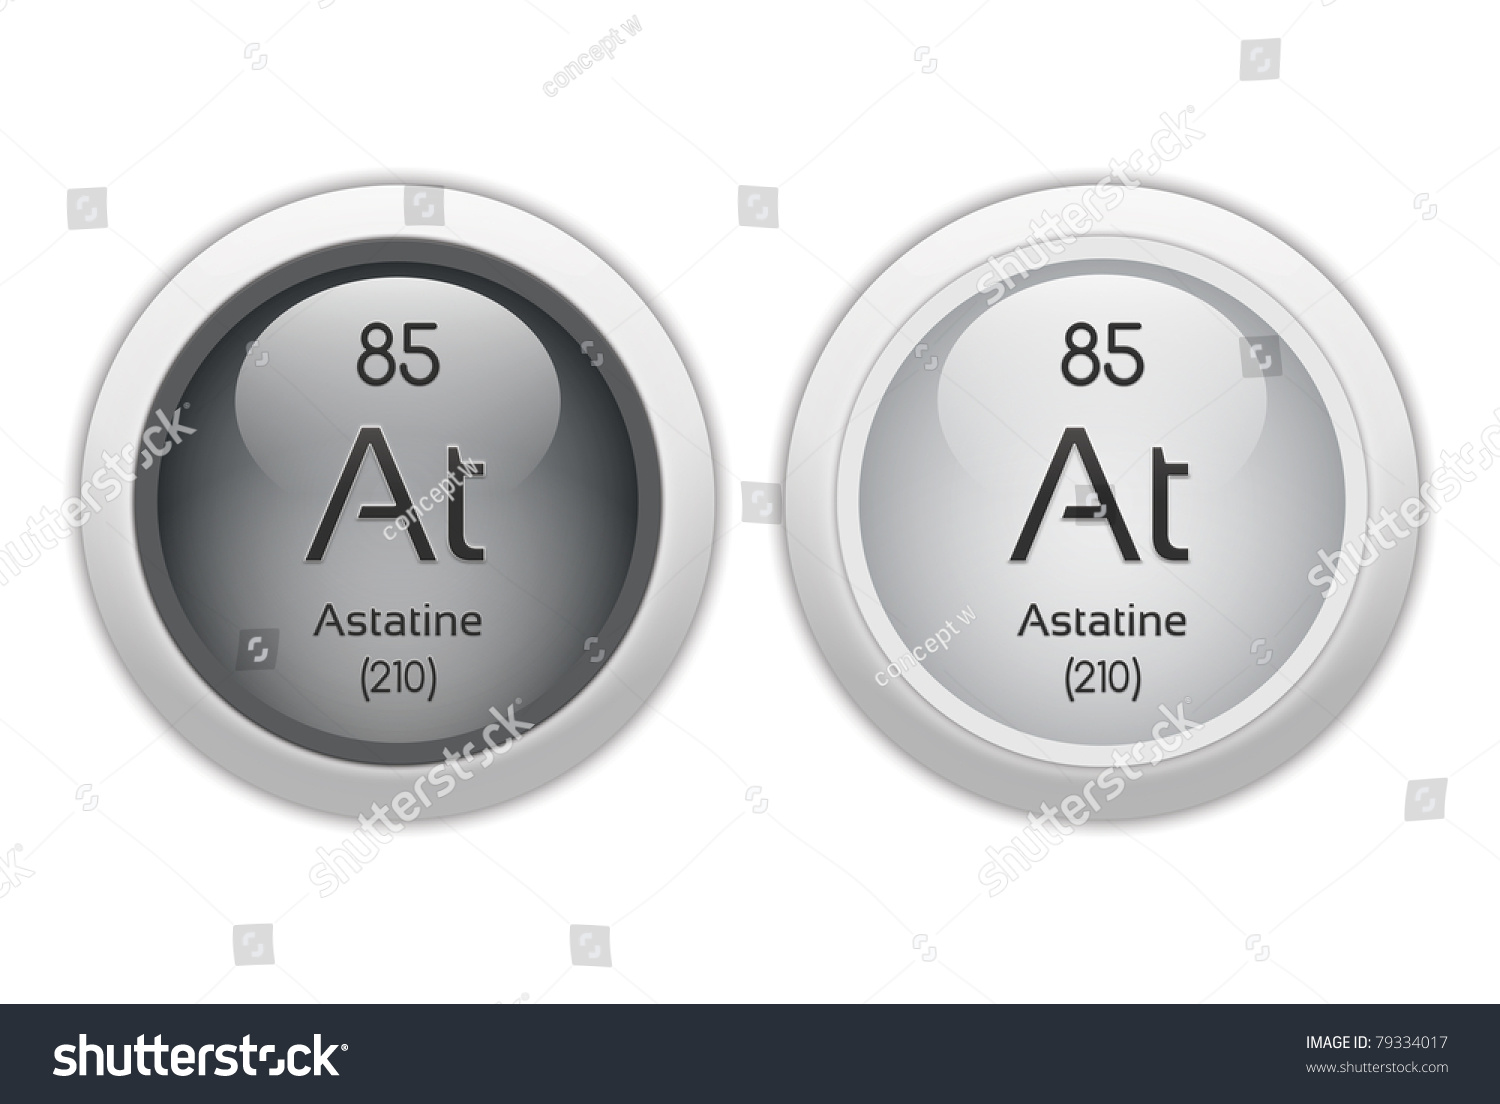 Astatine web buttons chemical element atomic stock illustration astatine web buttons chemical element with atomic number 85 it is represented by gamestrikefo Image collections